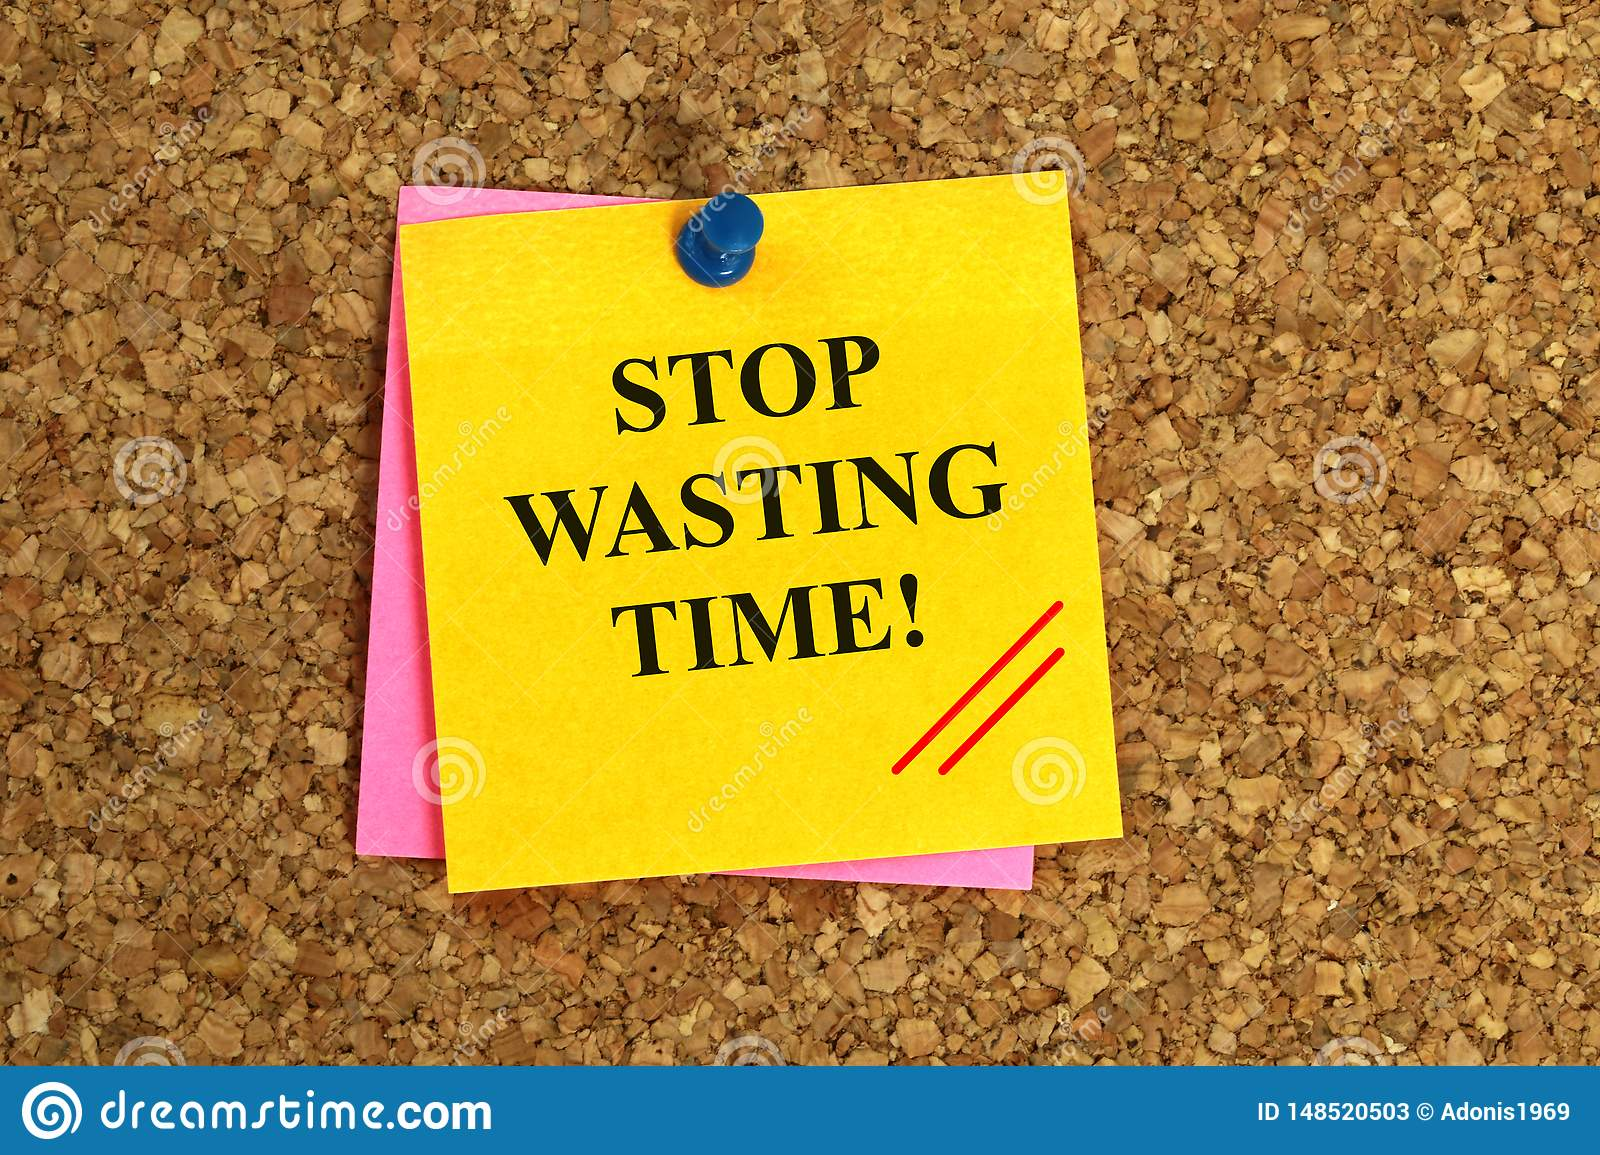 Stop wasting time illustration